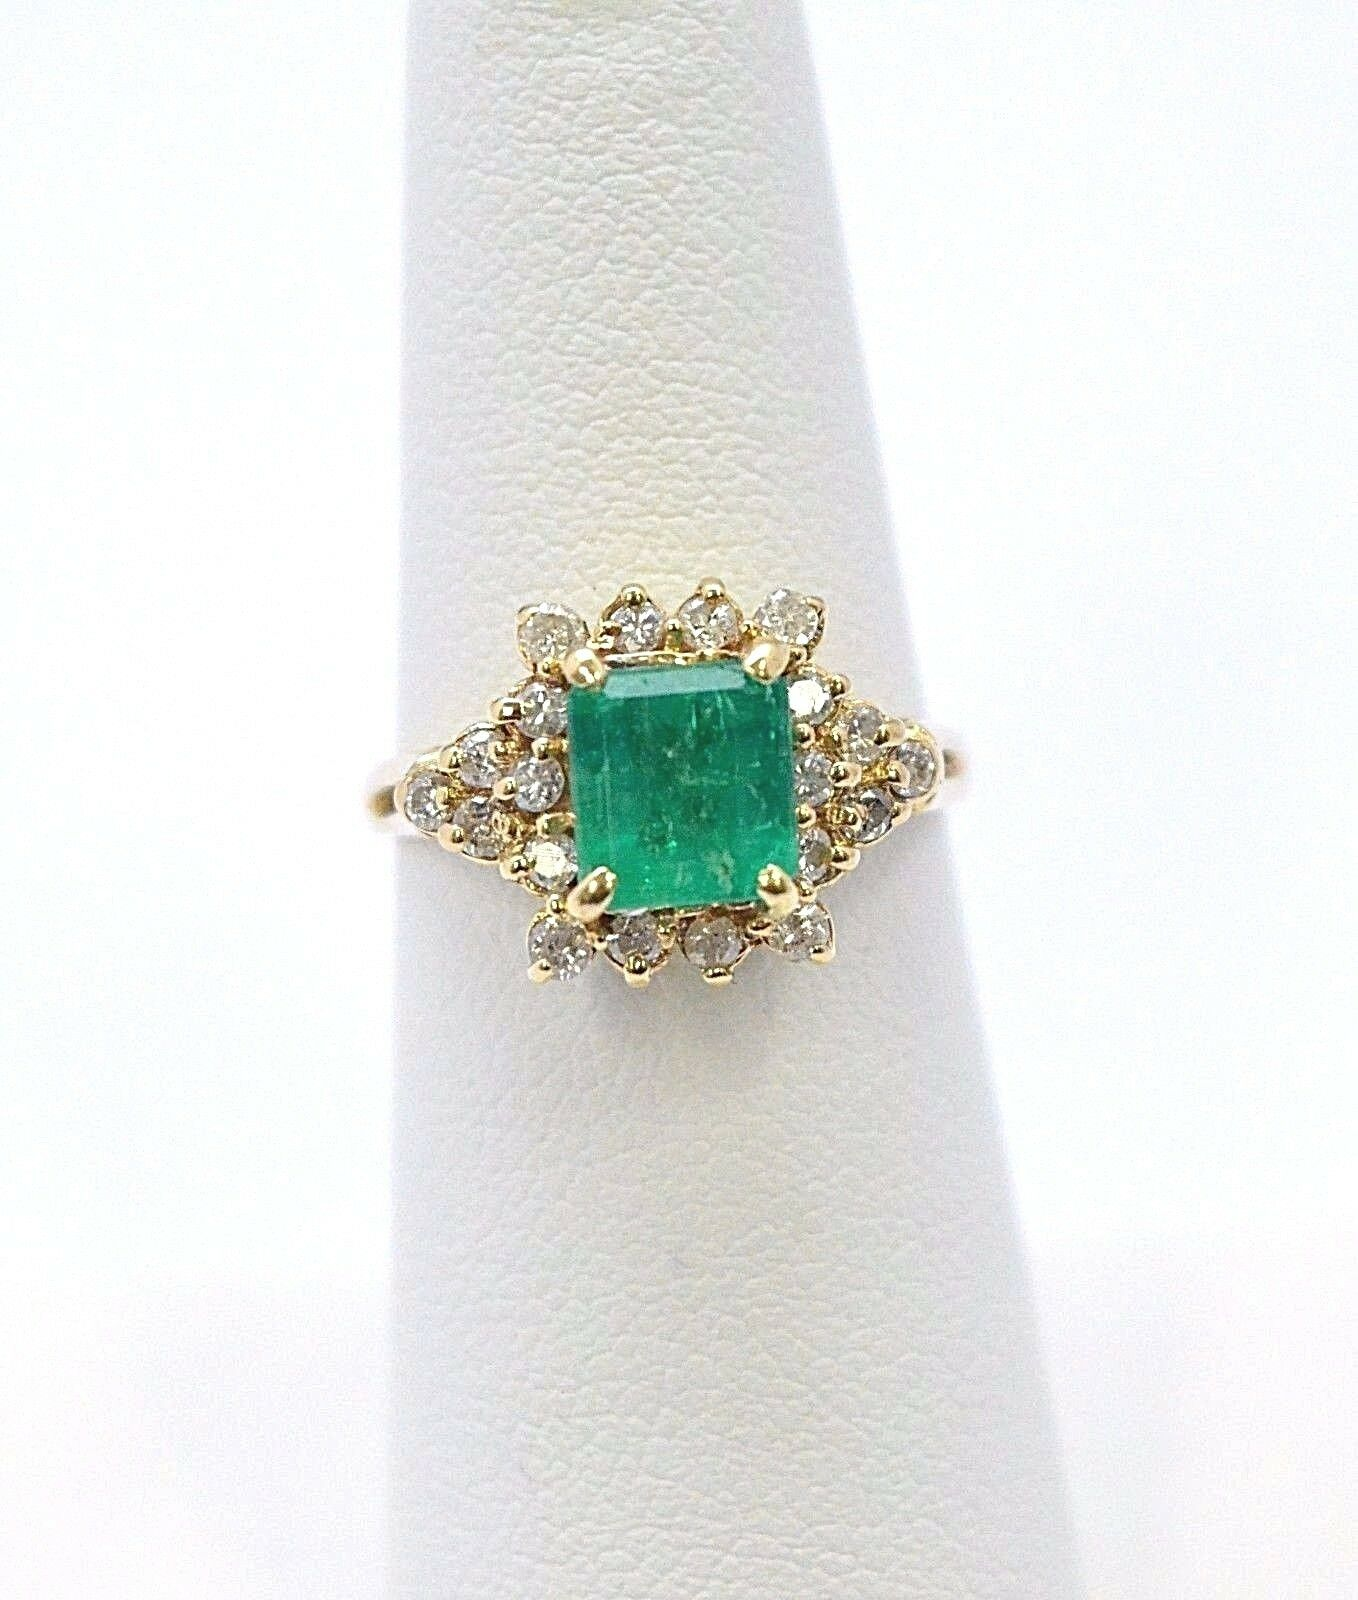 2150-VINTAGE LOOK 14K YELLOW gold EMERALD & DIAMOND RING  3.80 GRAMS SIZE 6